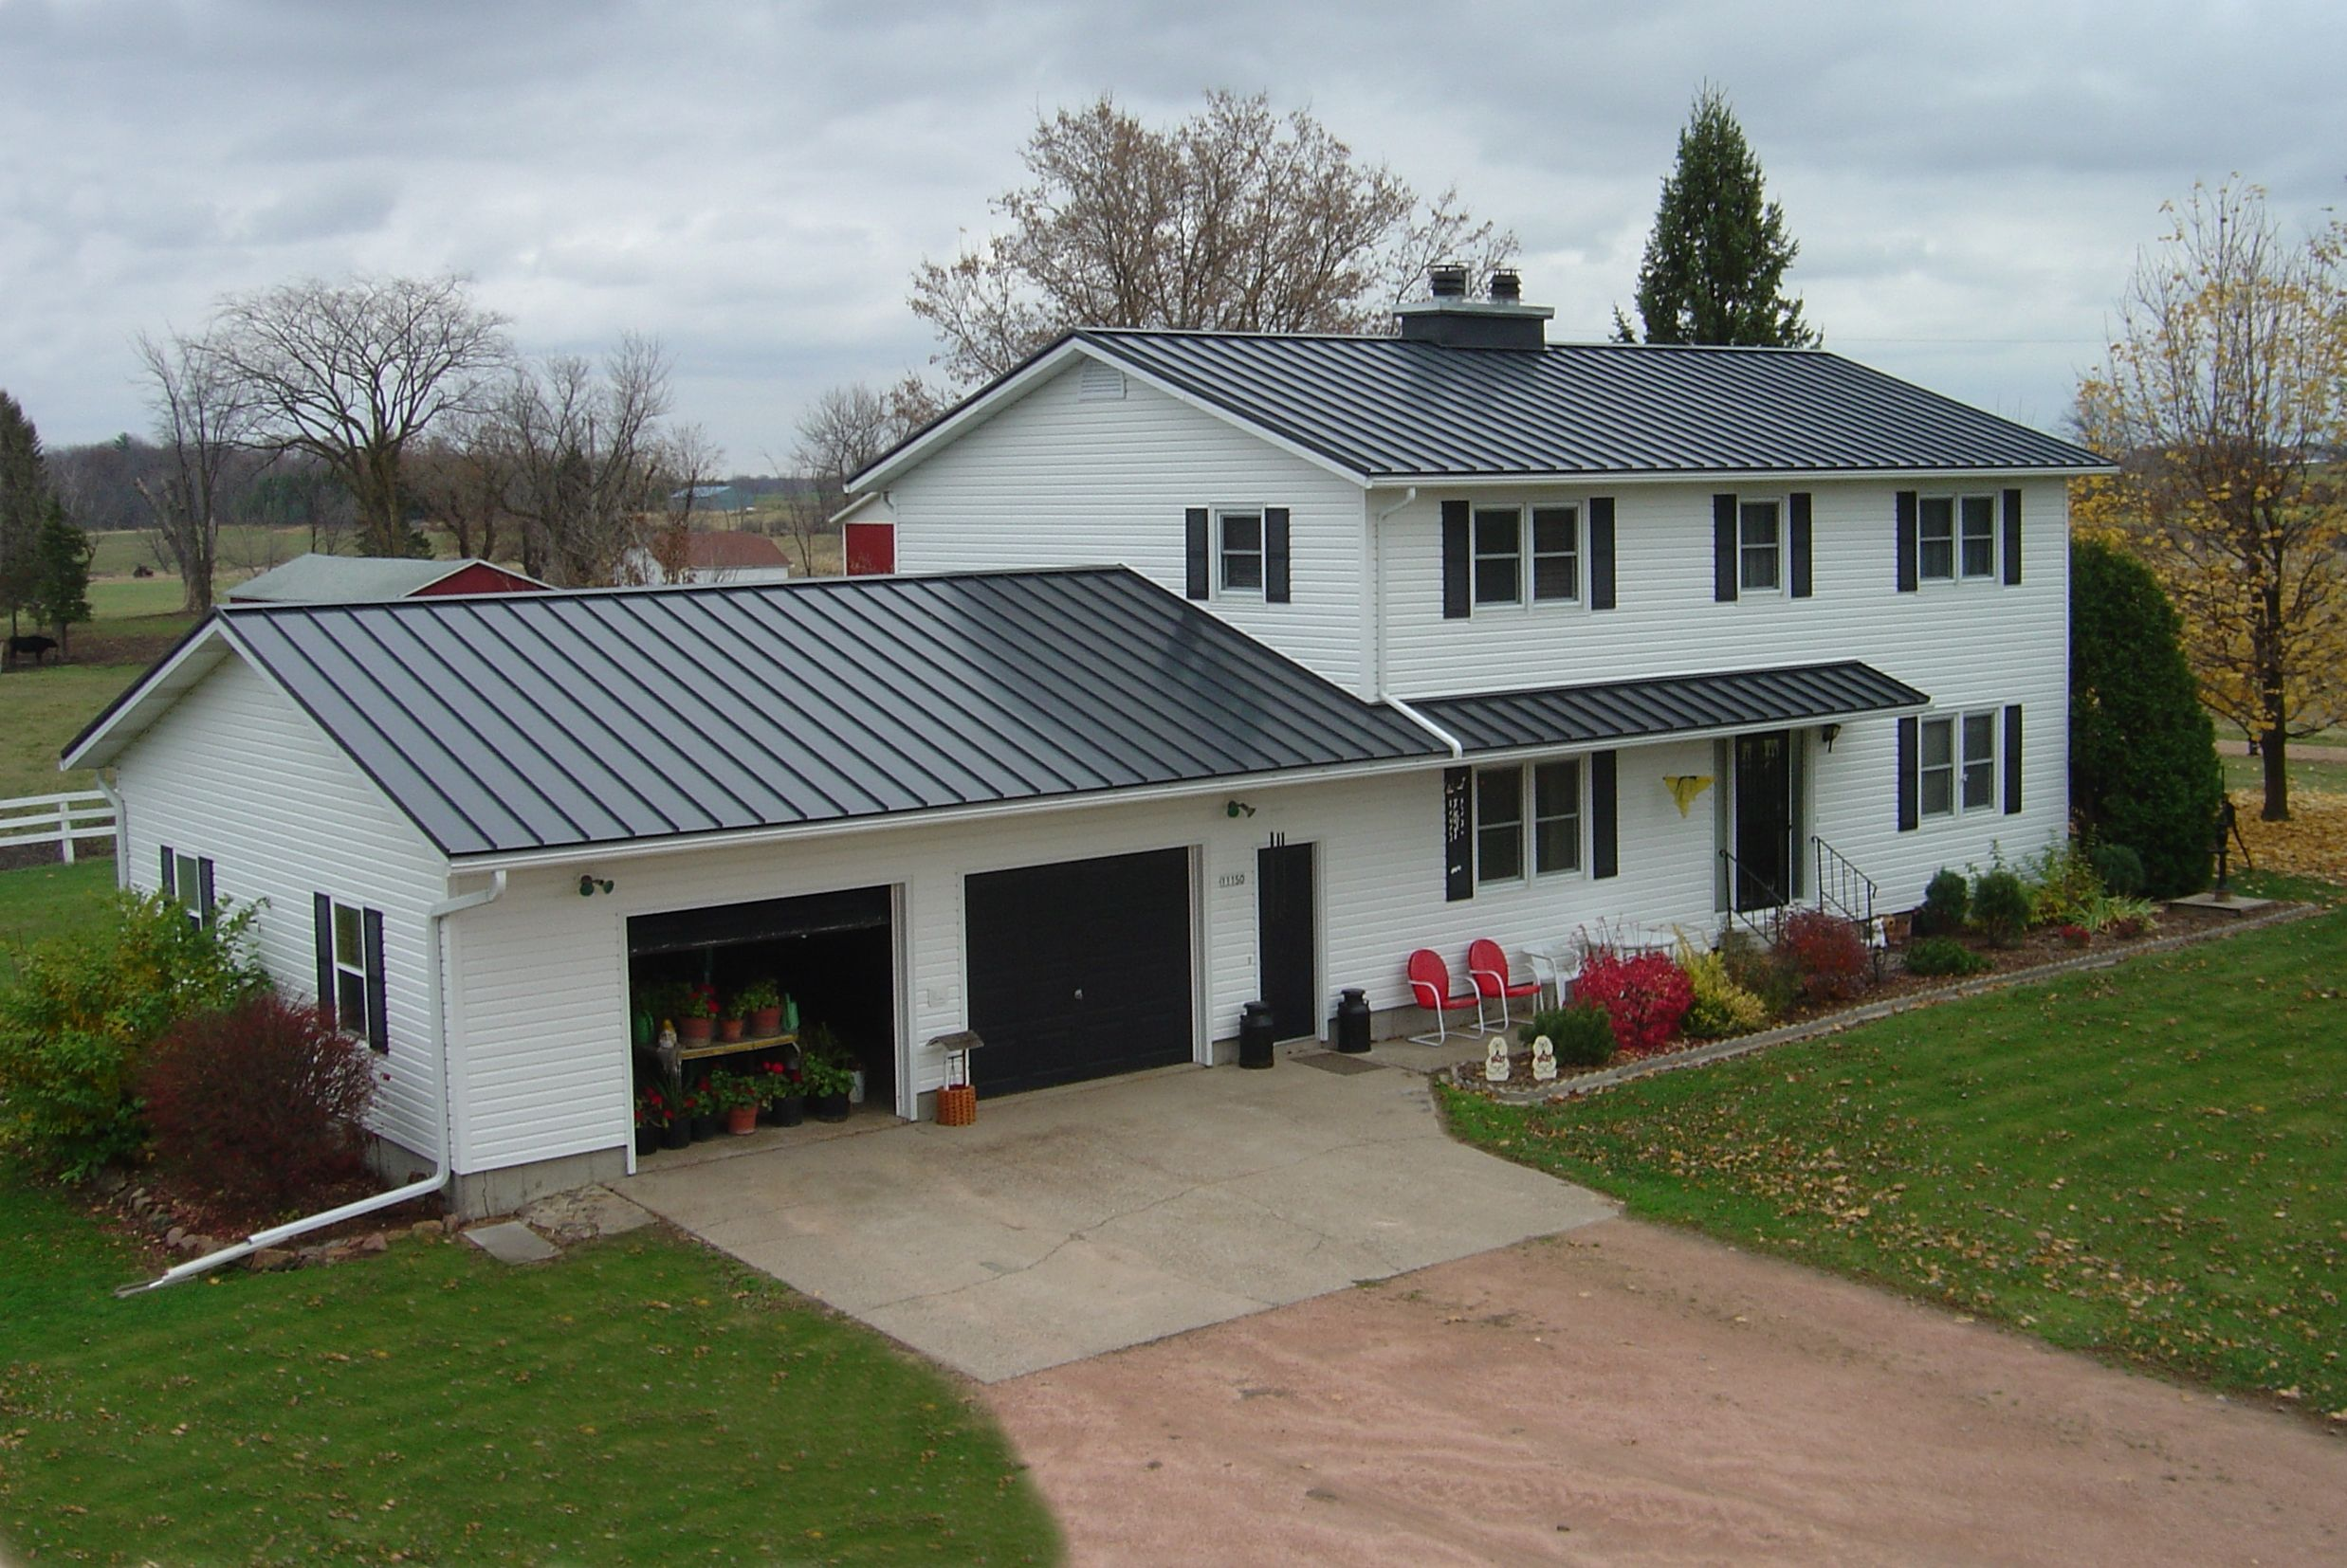 Standing Seam Roof In Charcoal Gray Metal Provided By